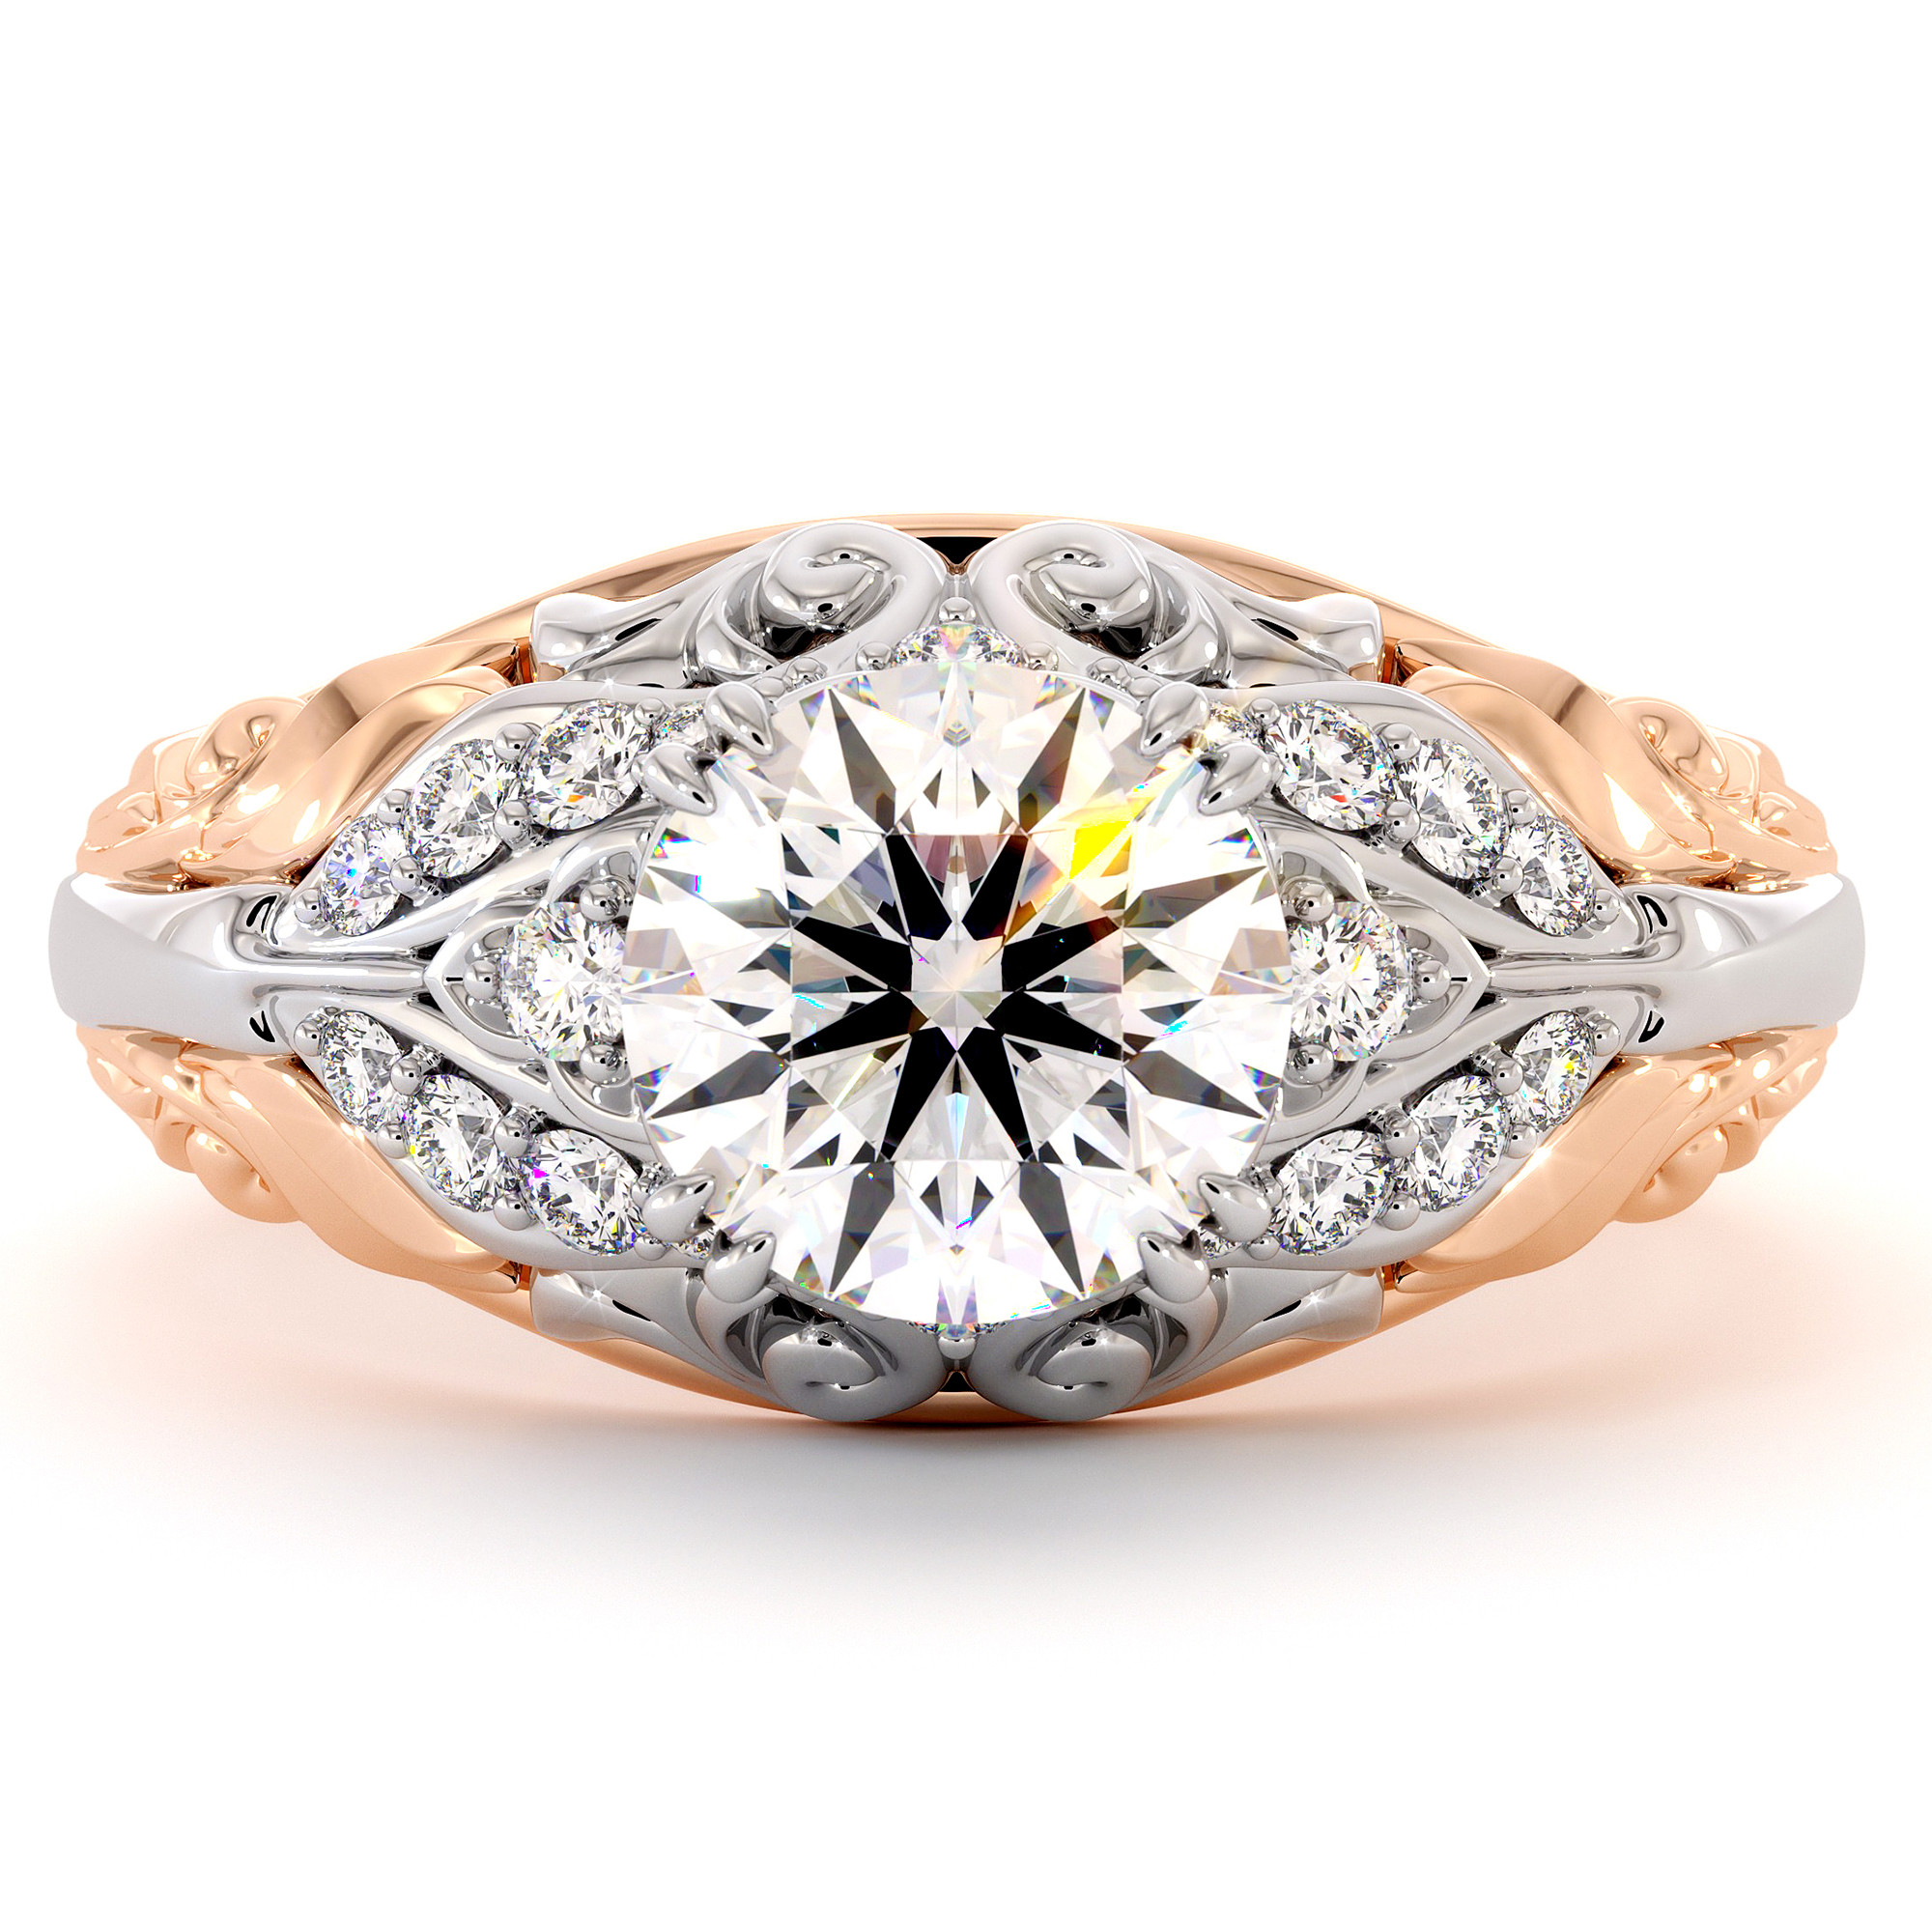 Unique Regal Filigree Wedding ring Two Tone Gold Moissanite Forever One Proposal Ring